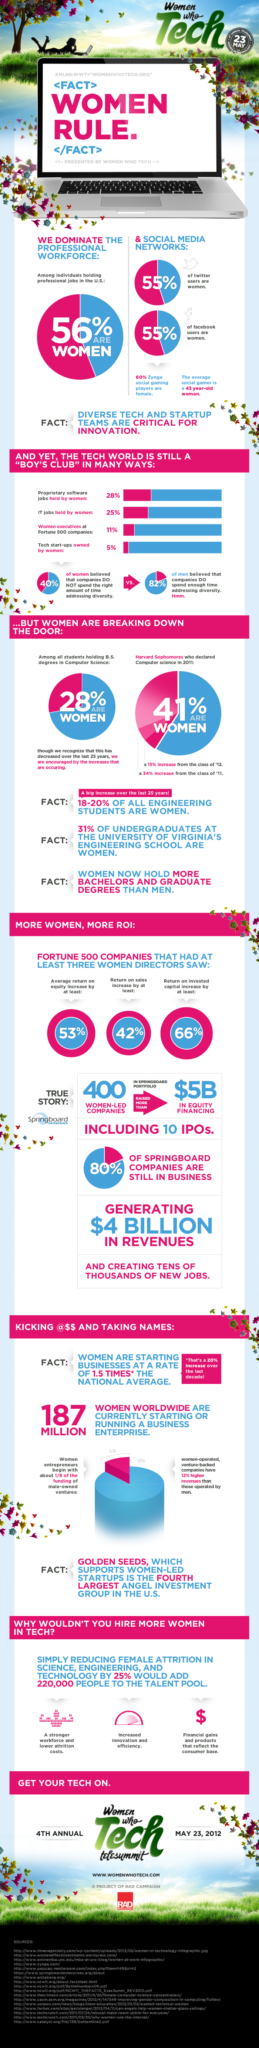 infographic tech women hr human resources